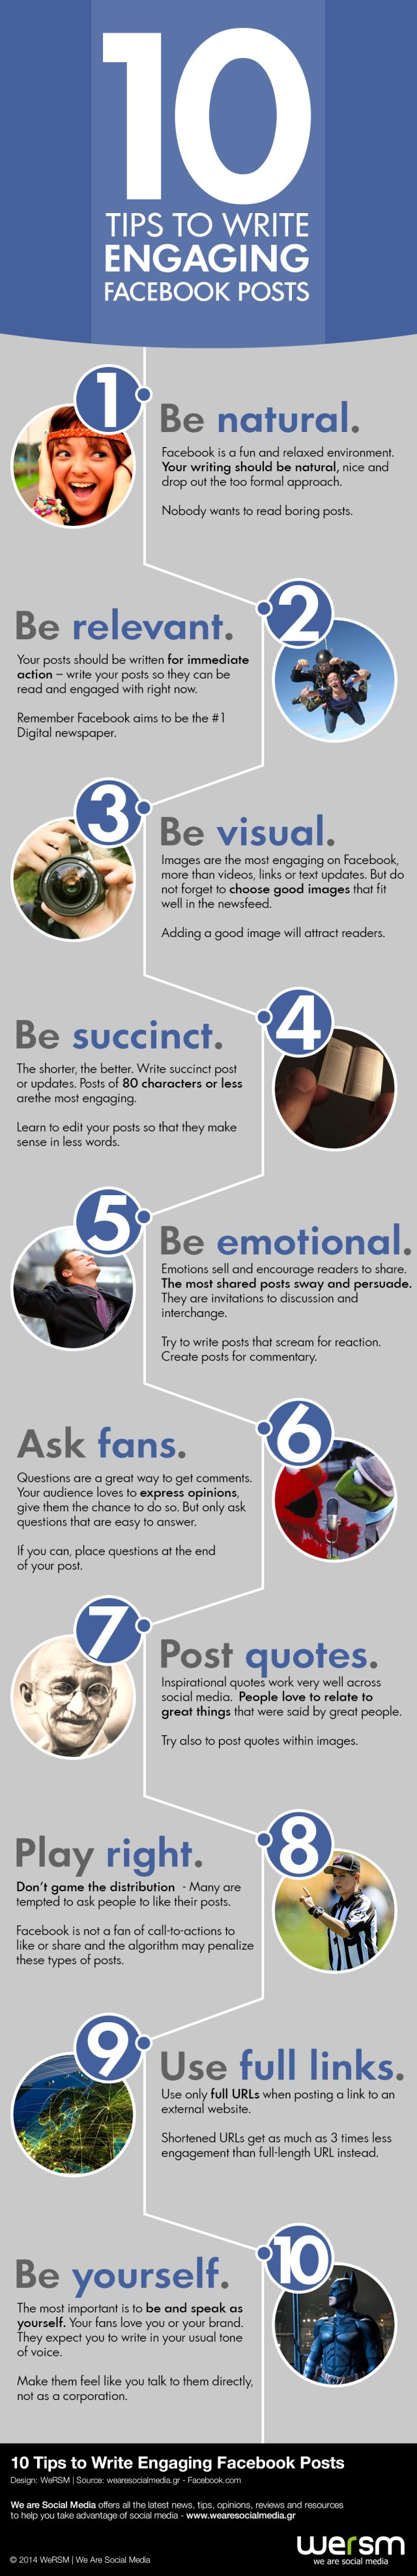 10 tips for Facebook